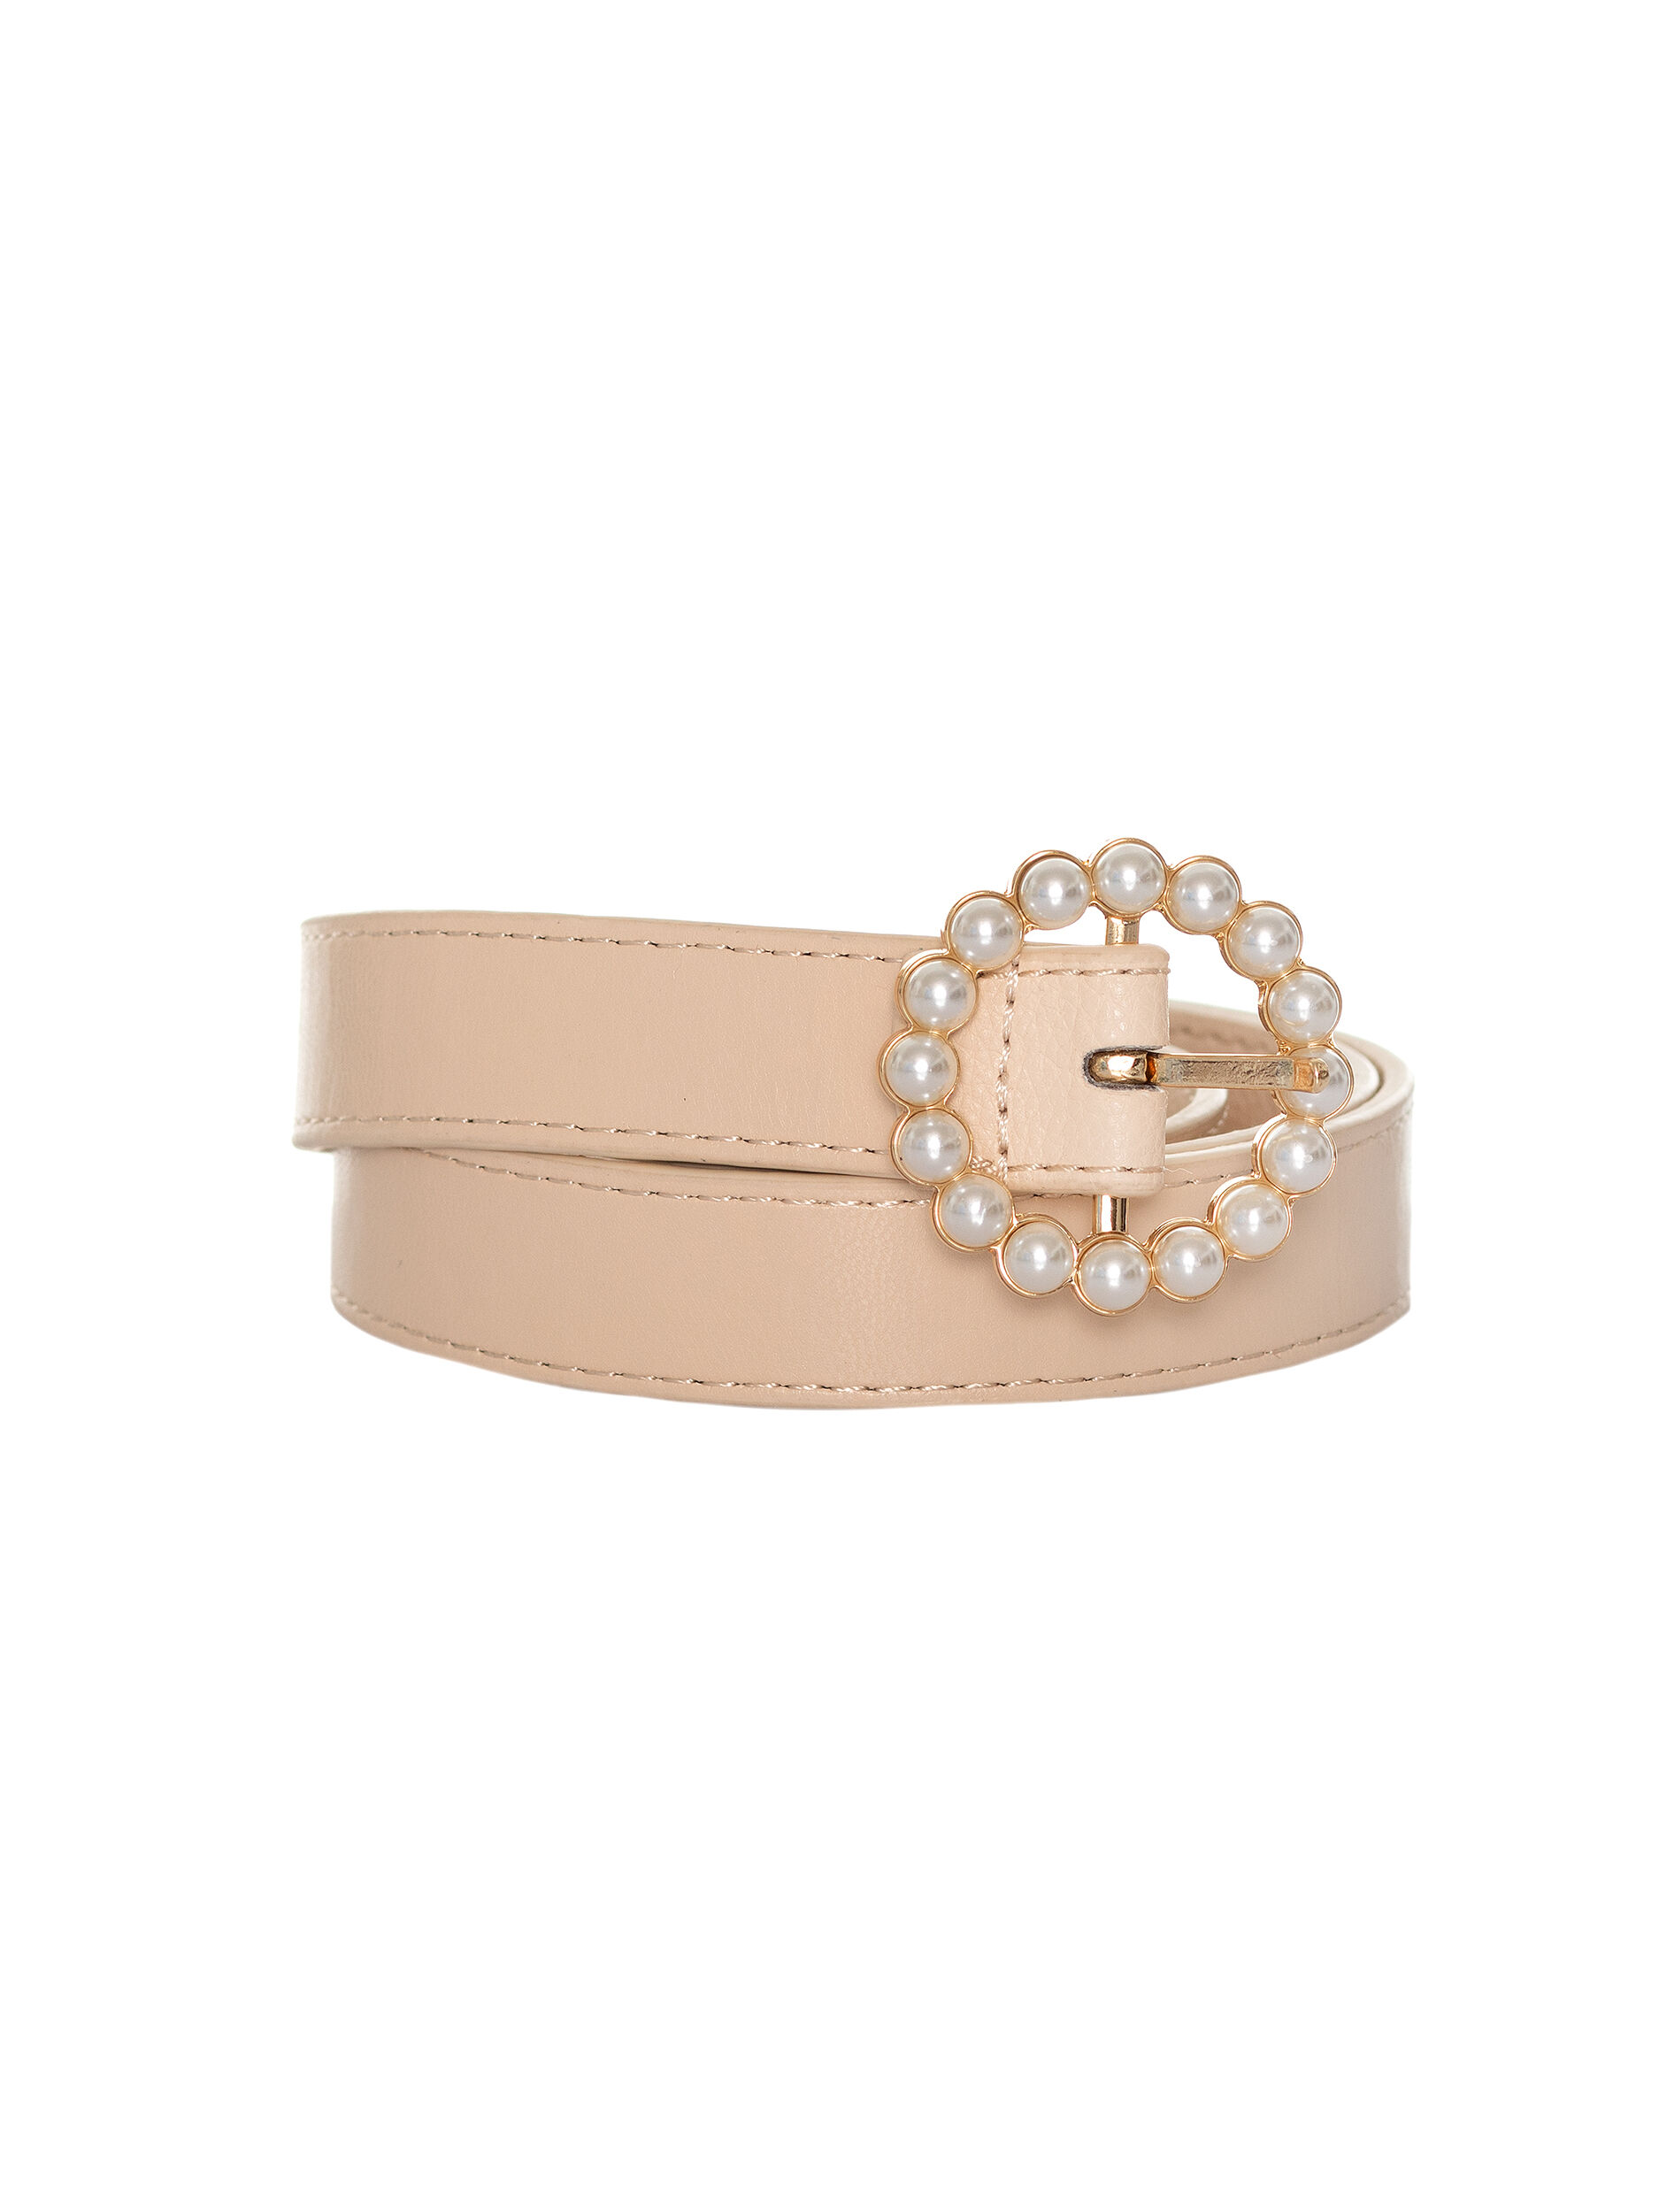 Cosmo Pearl Belt